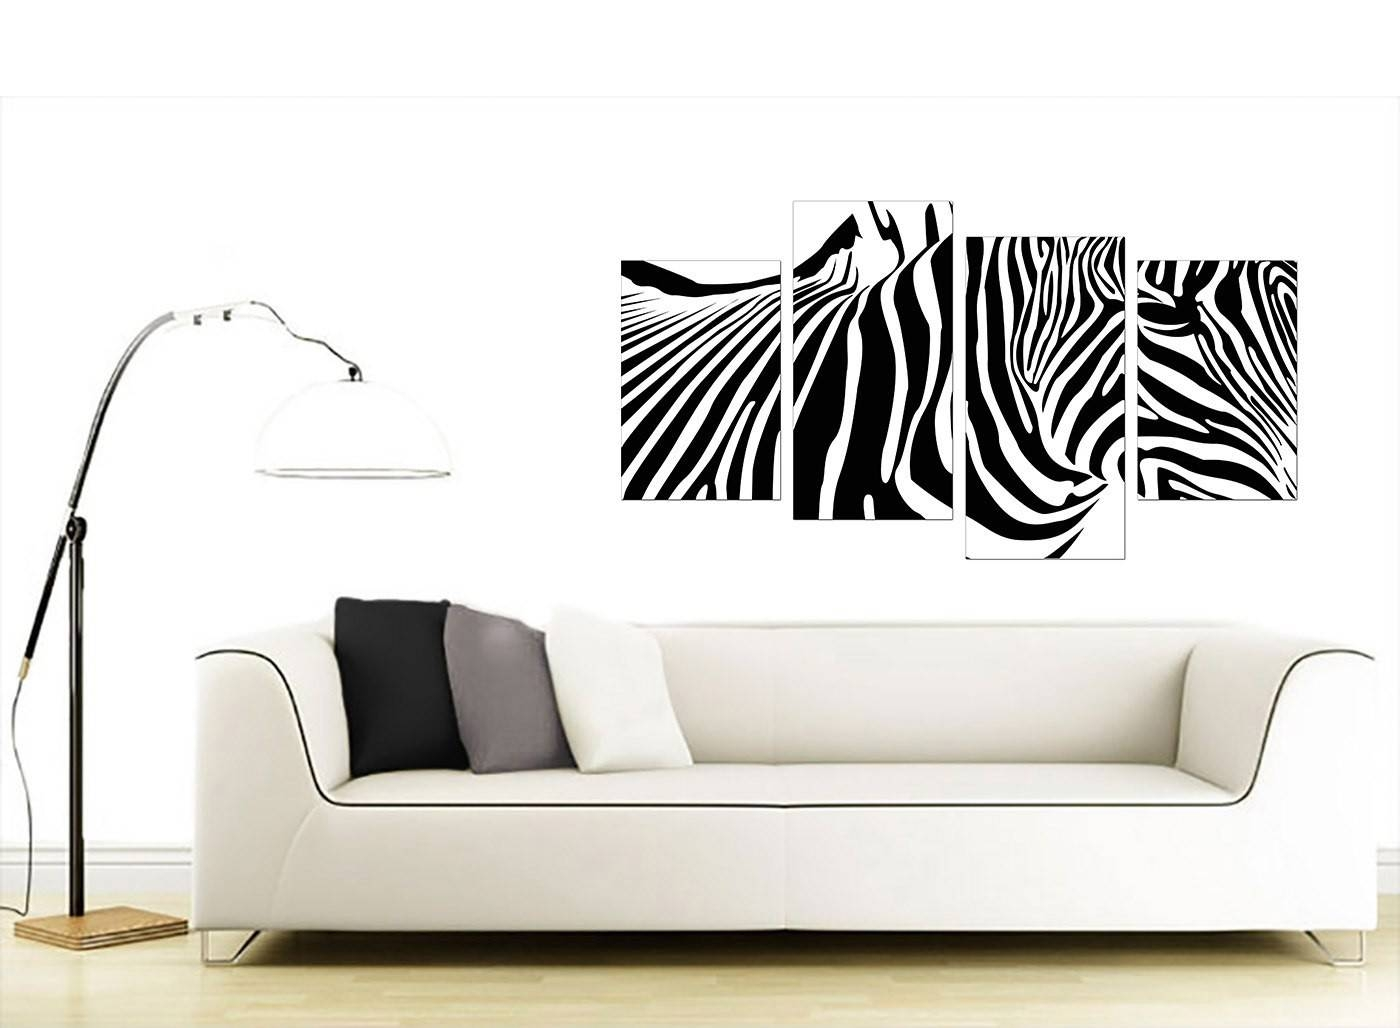 Animal Canvas Wall Art Of Zebra – For Living Room With Regard To Current Animal Canvas Wall Art (View 8 of 20)